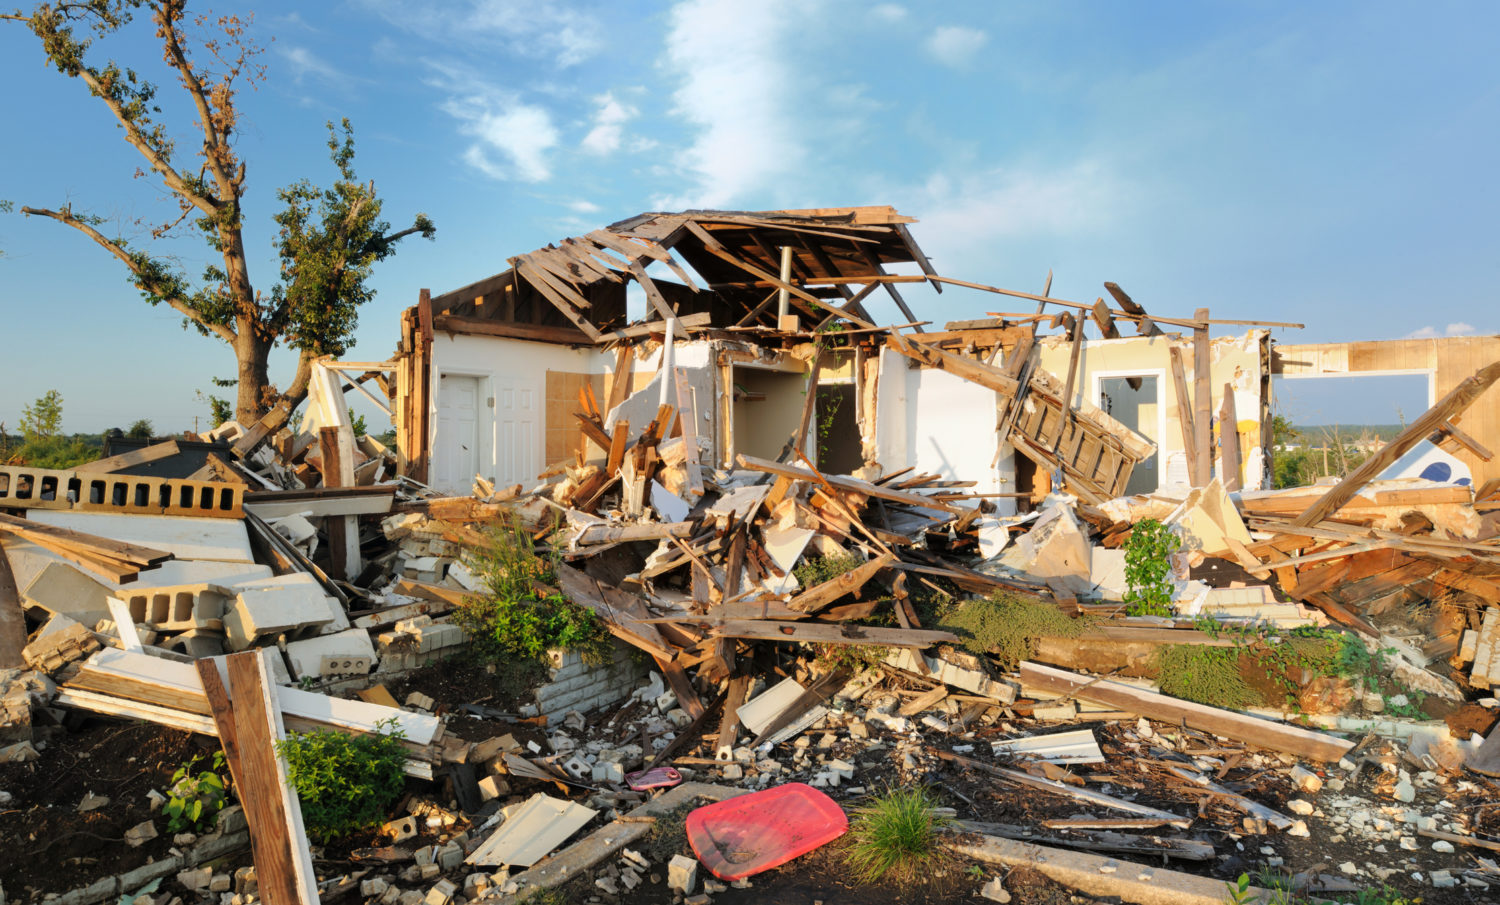 A home severely damaged by a tornado in Alabama